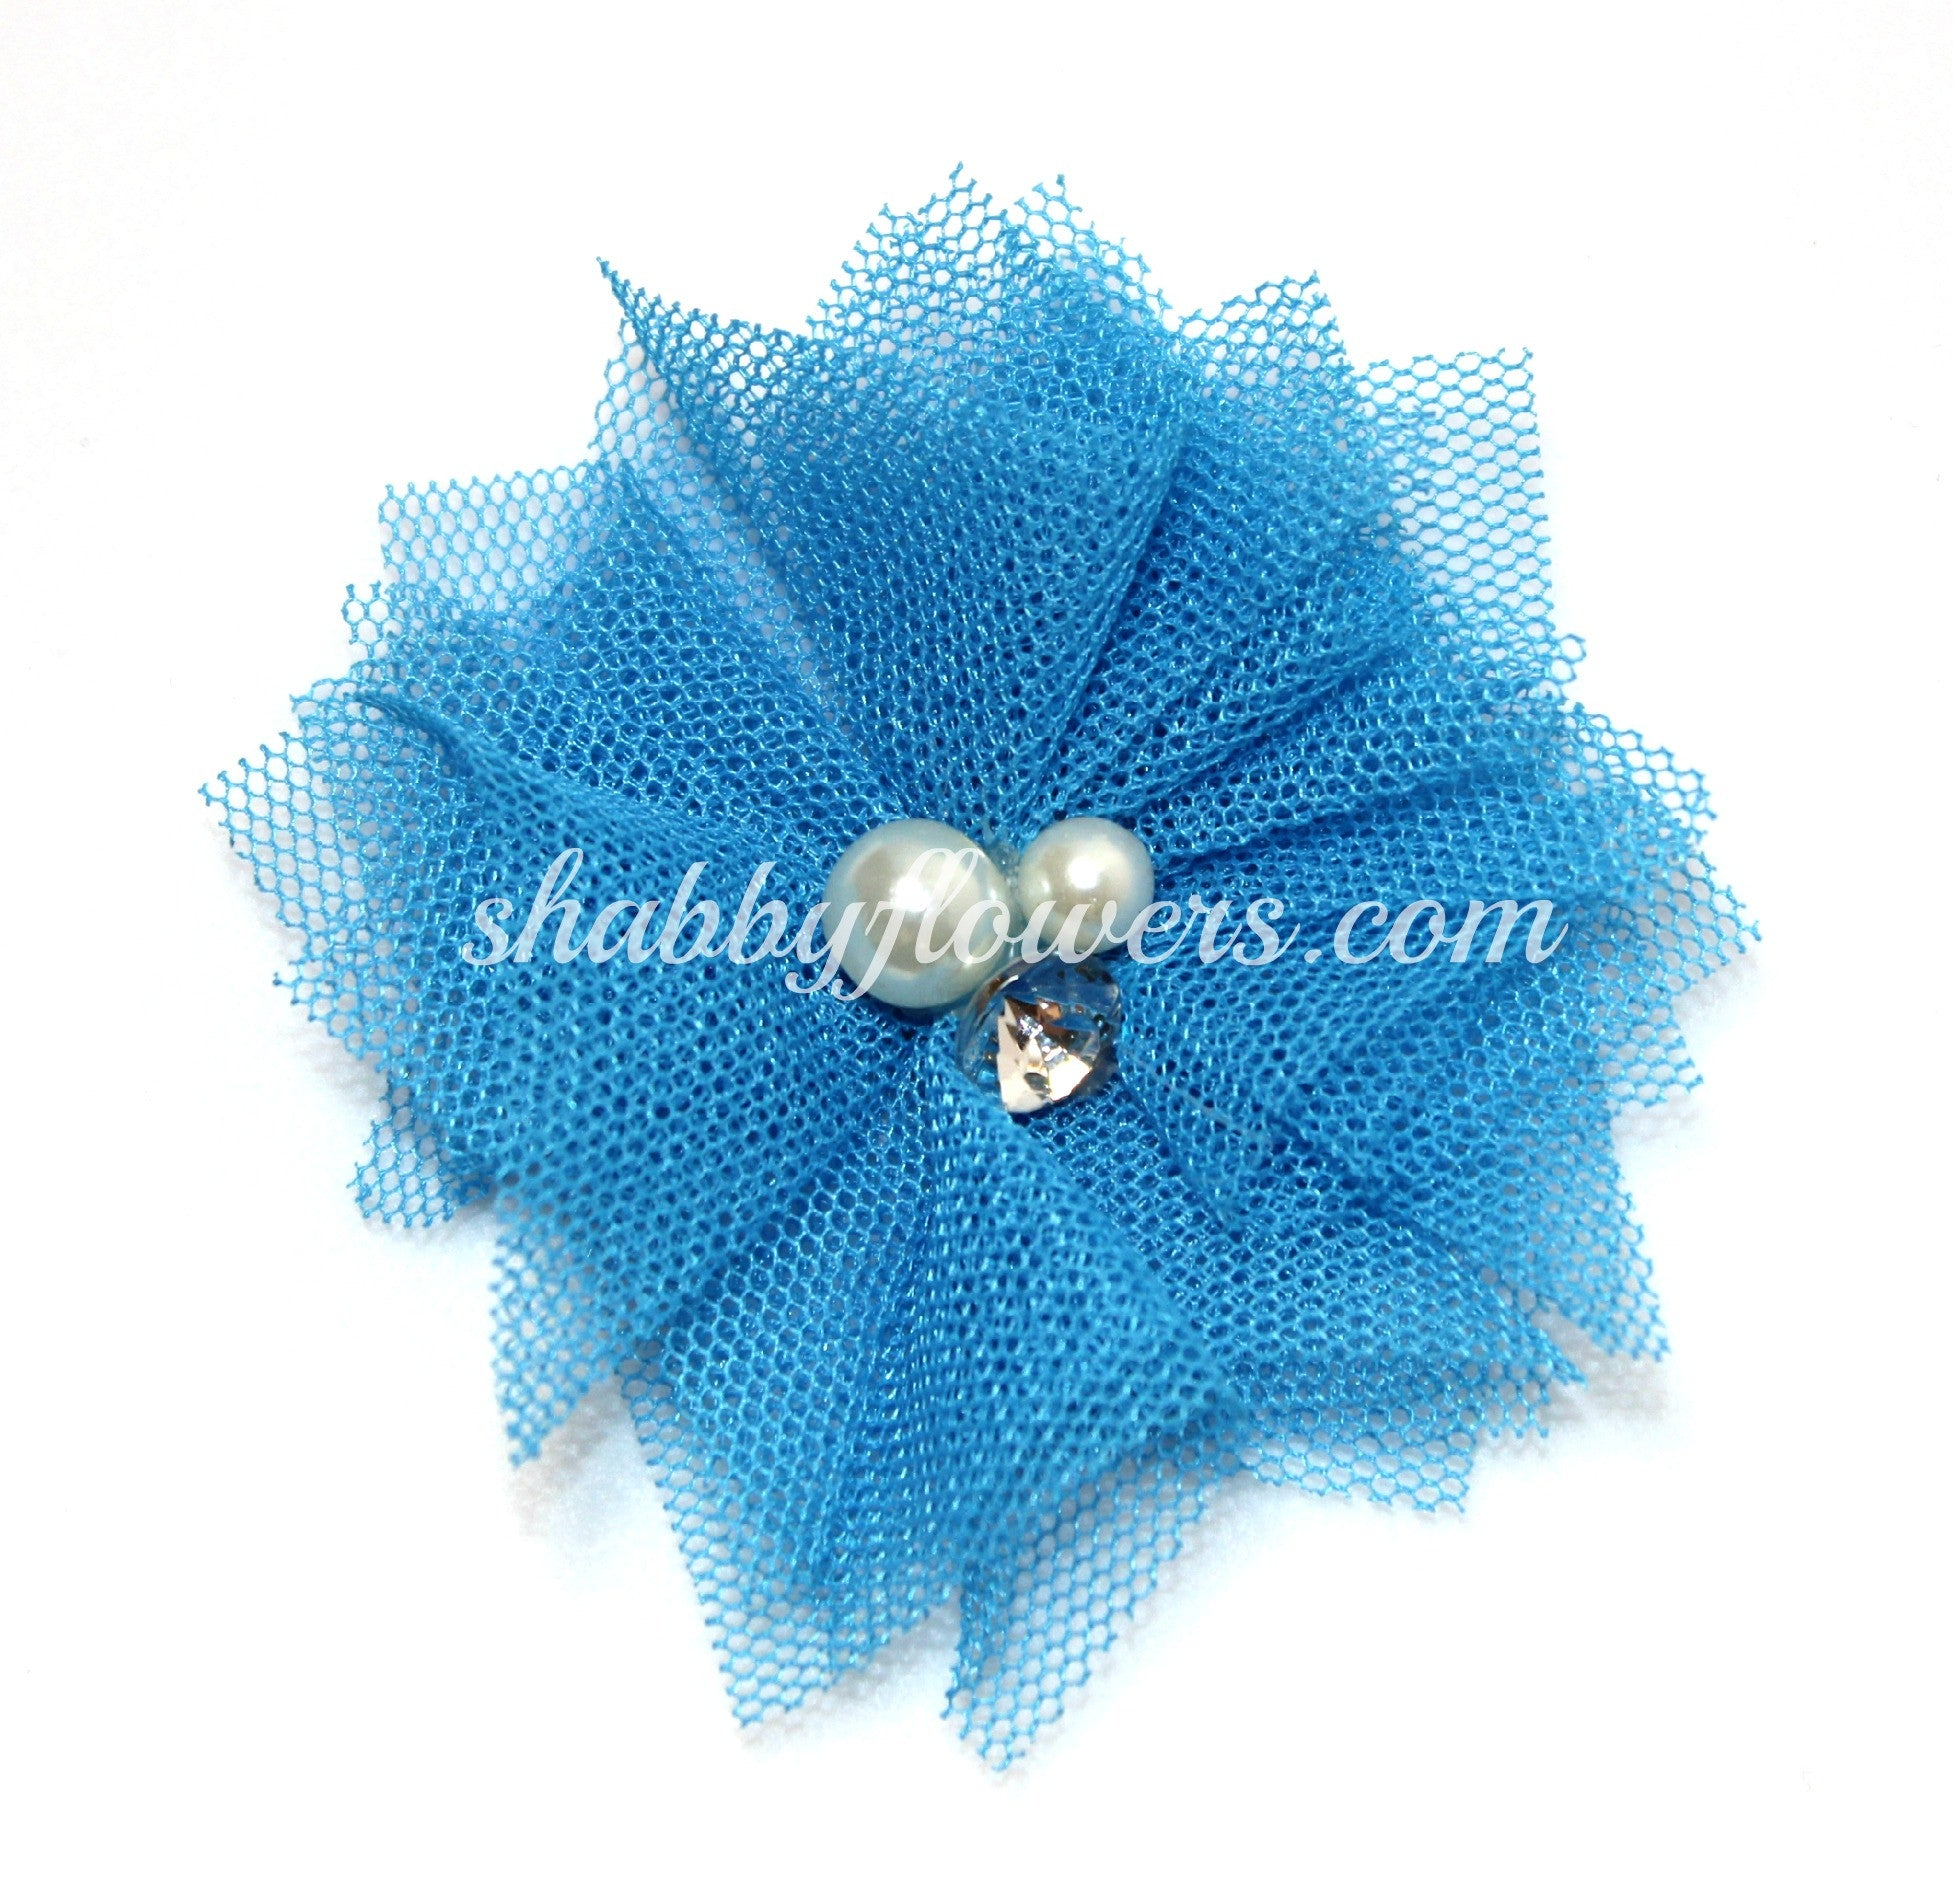 Tulle Pearl Flower - Mystic Blue - shabbyflowers.com